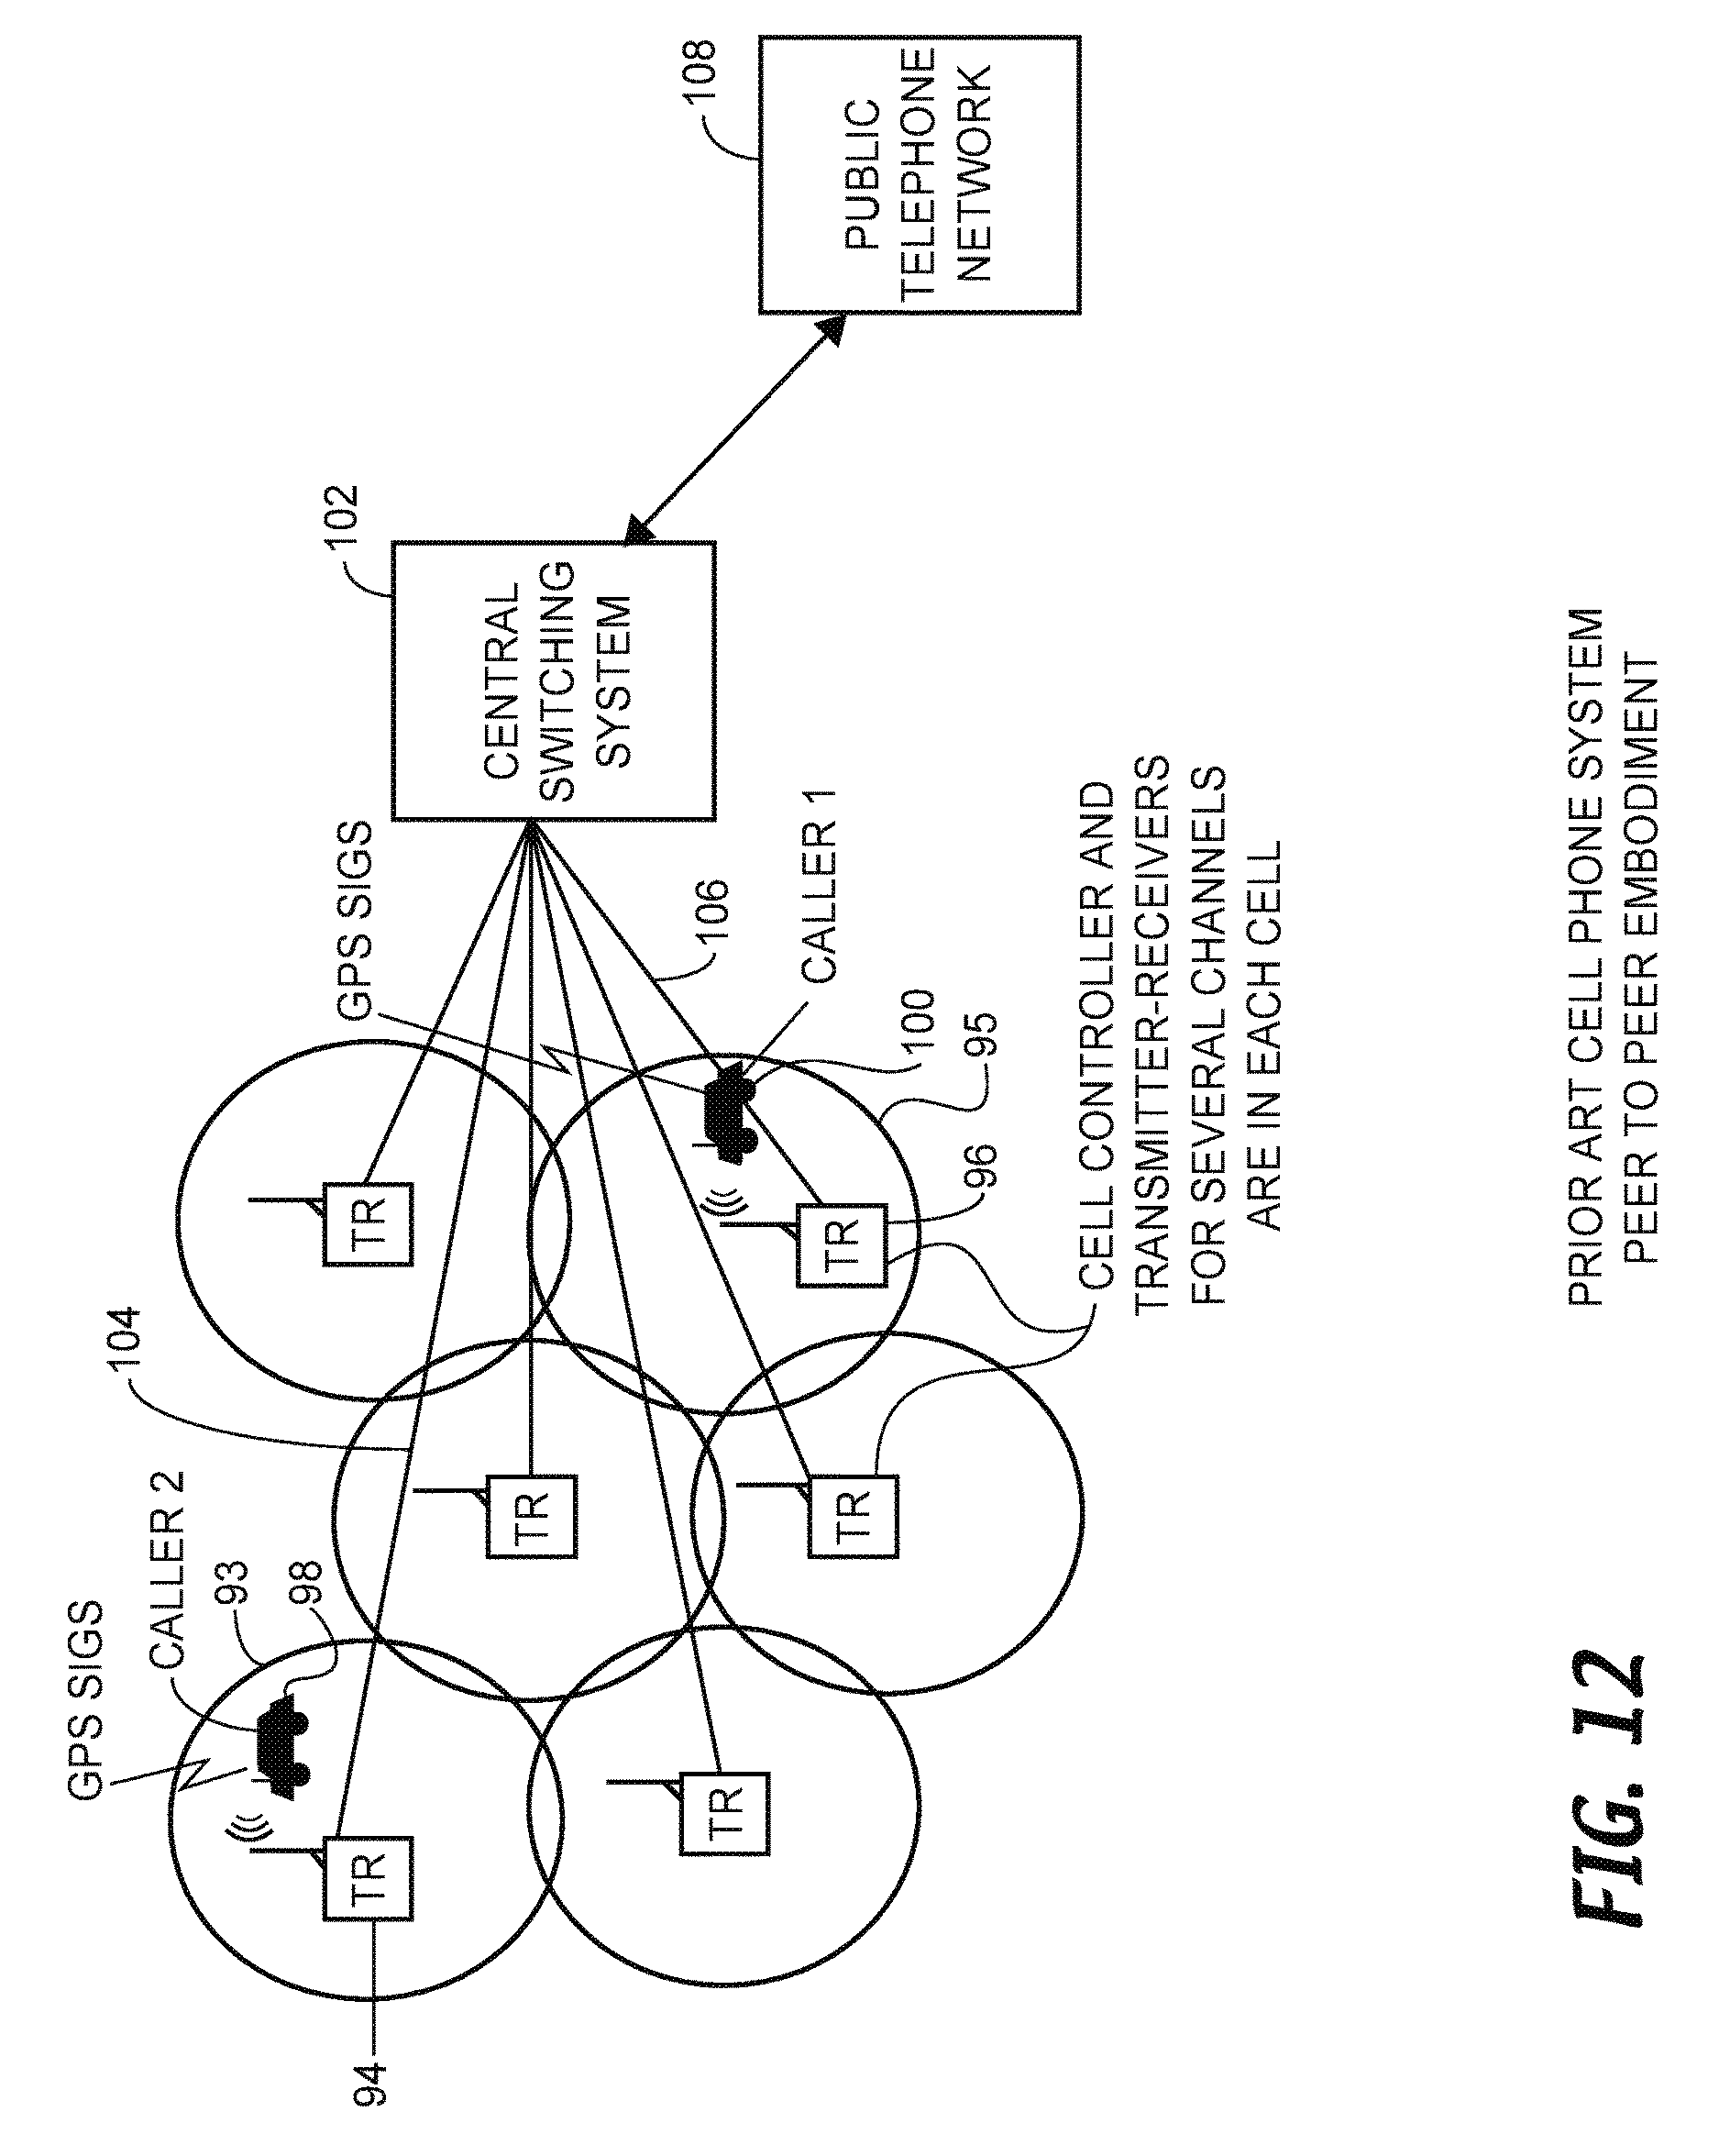 Us9654921b1 techniques for sharing position data between first and second devices patents